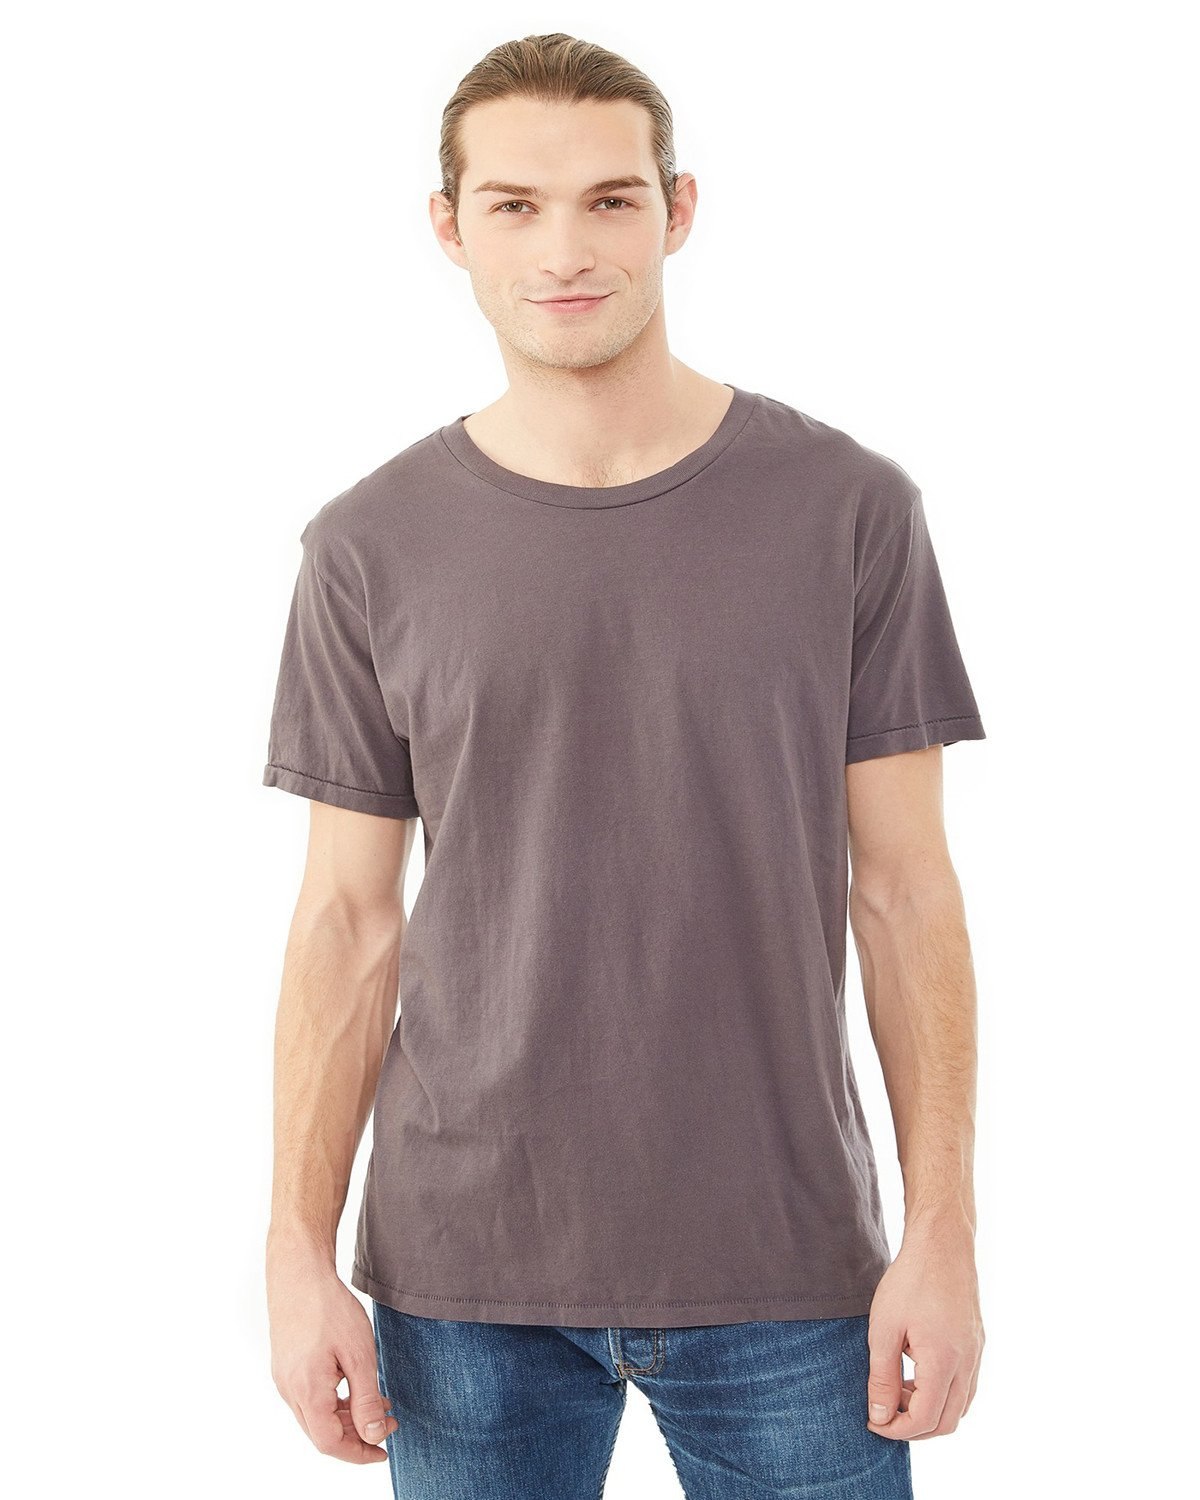 Alternative Apparel - 04162C1 - Men's Heritage Garment-Dyed T-Shirt